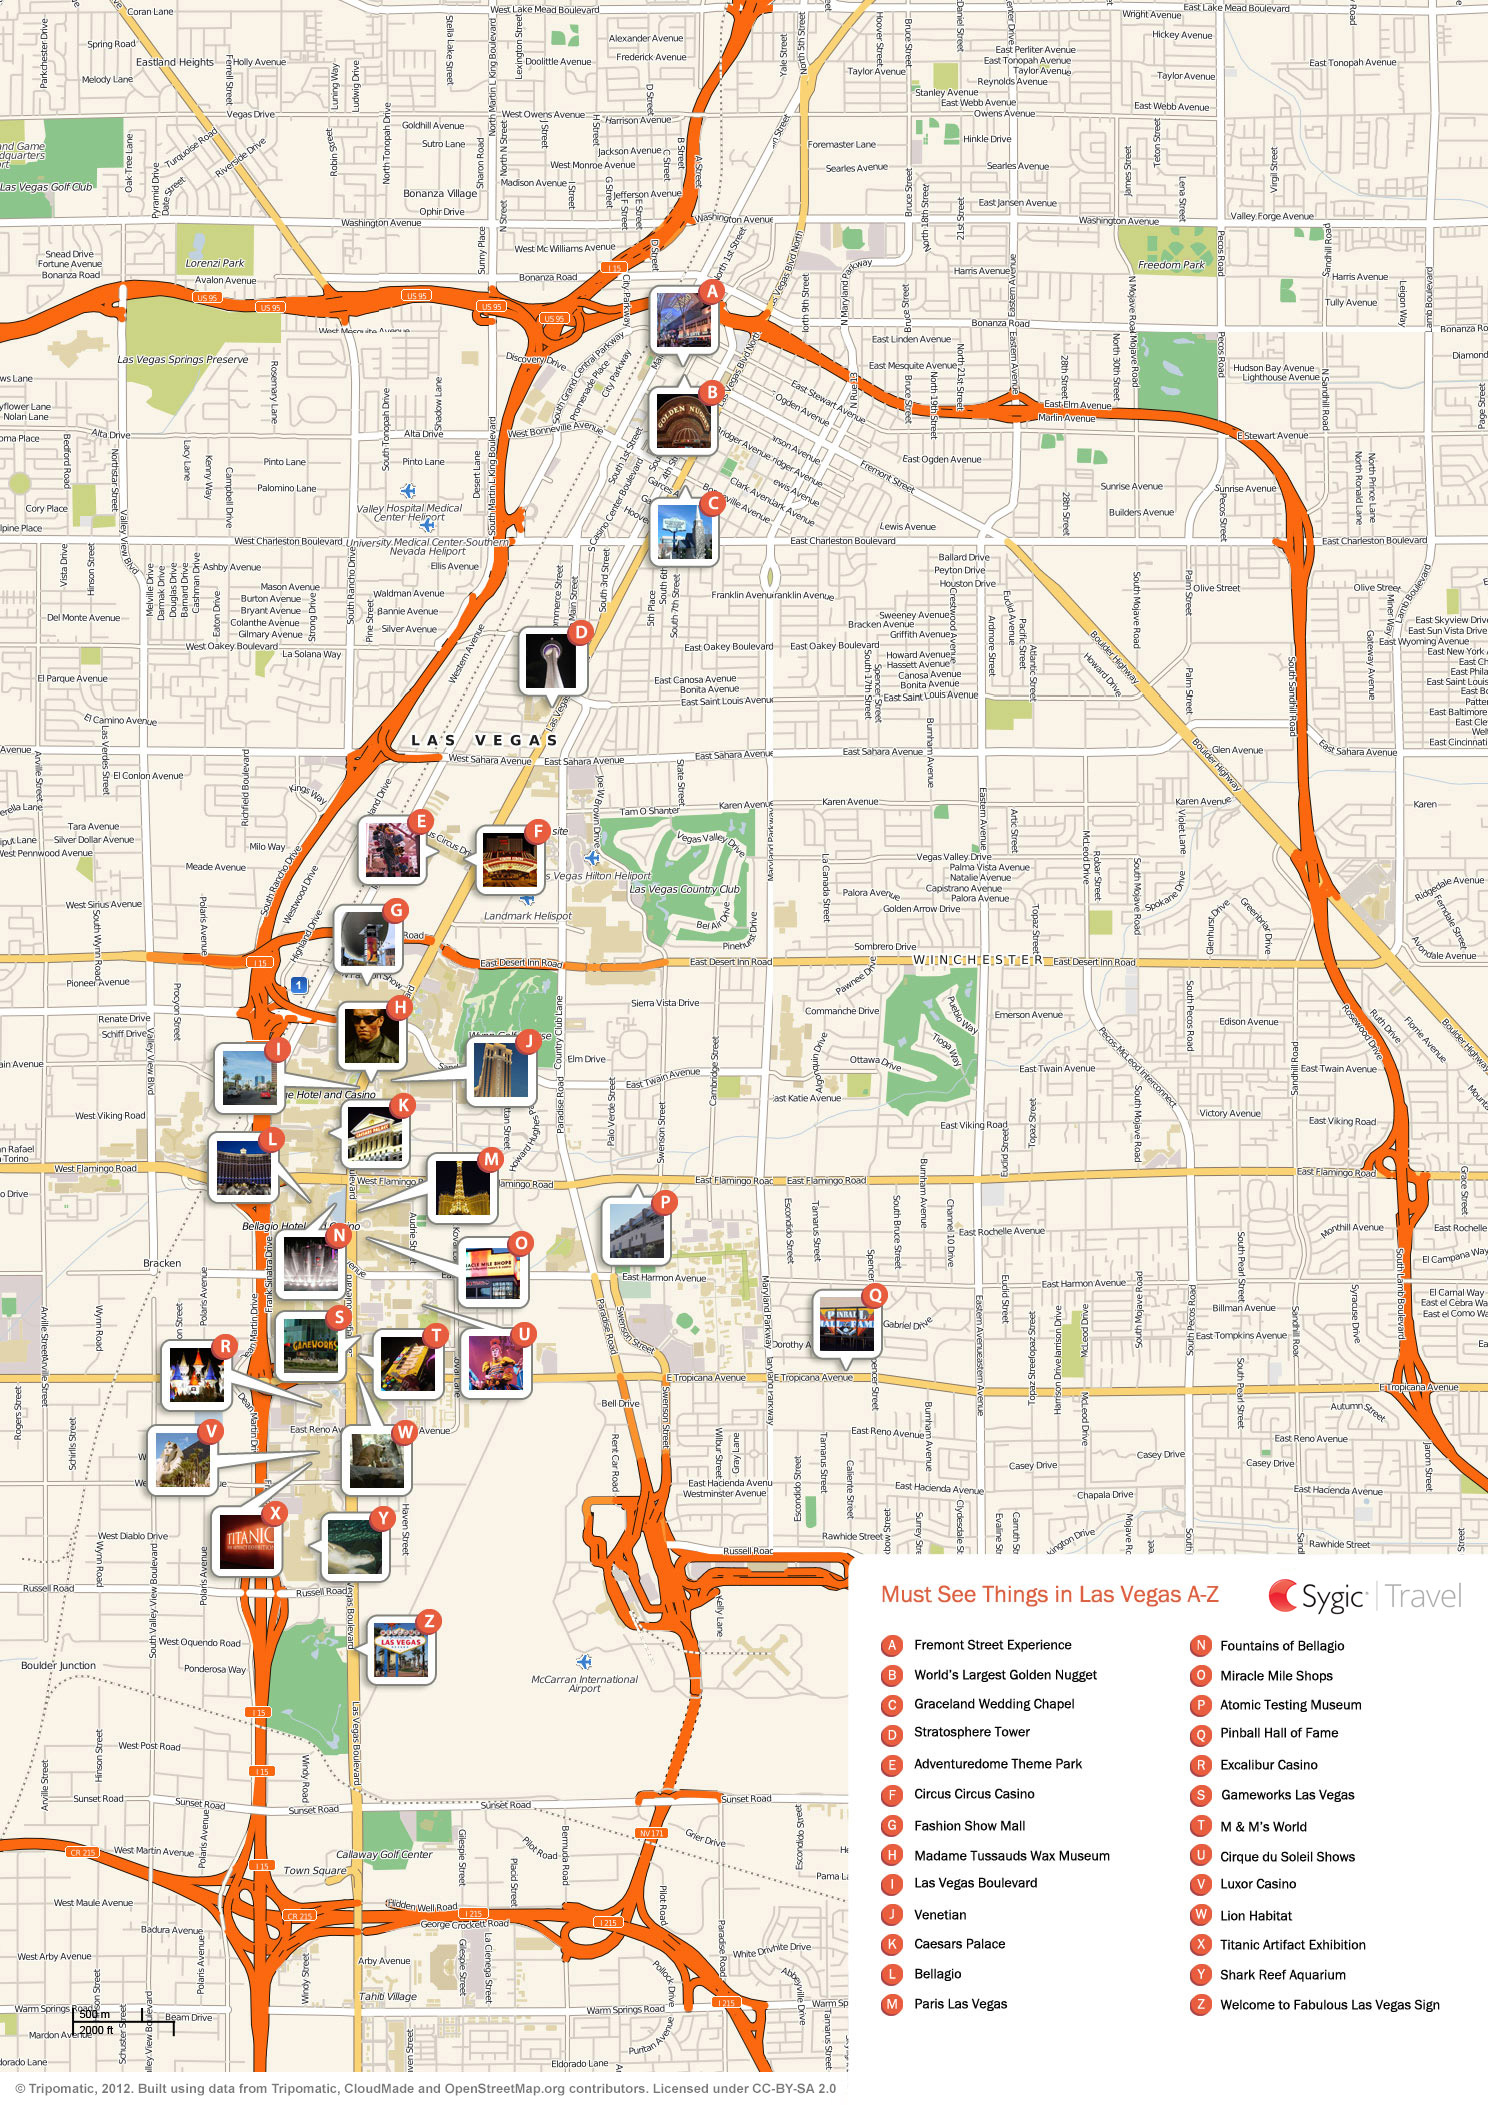 Las Vegas Printable Tourist Map – San Francisco Tourist Map Pdf